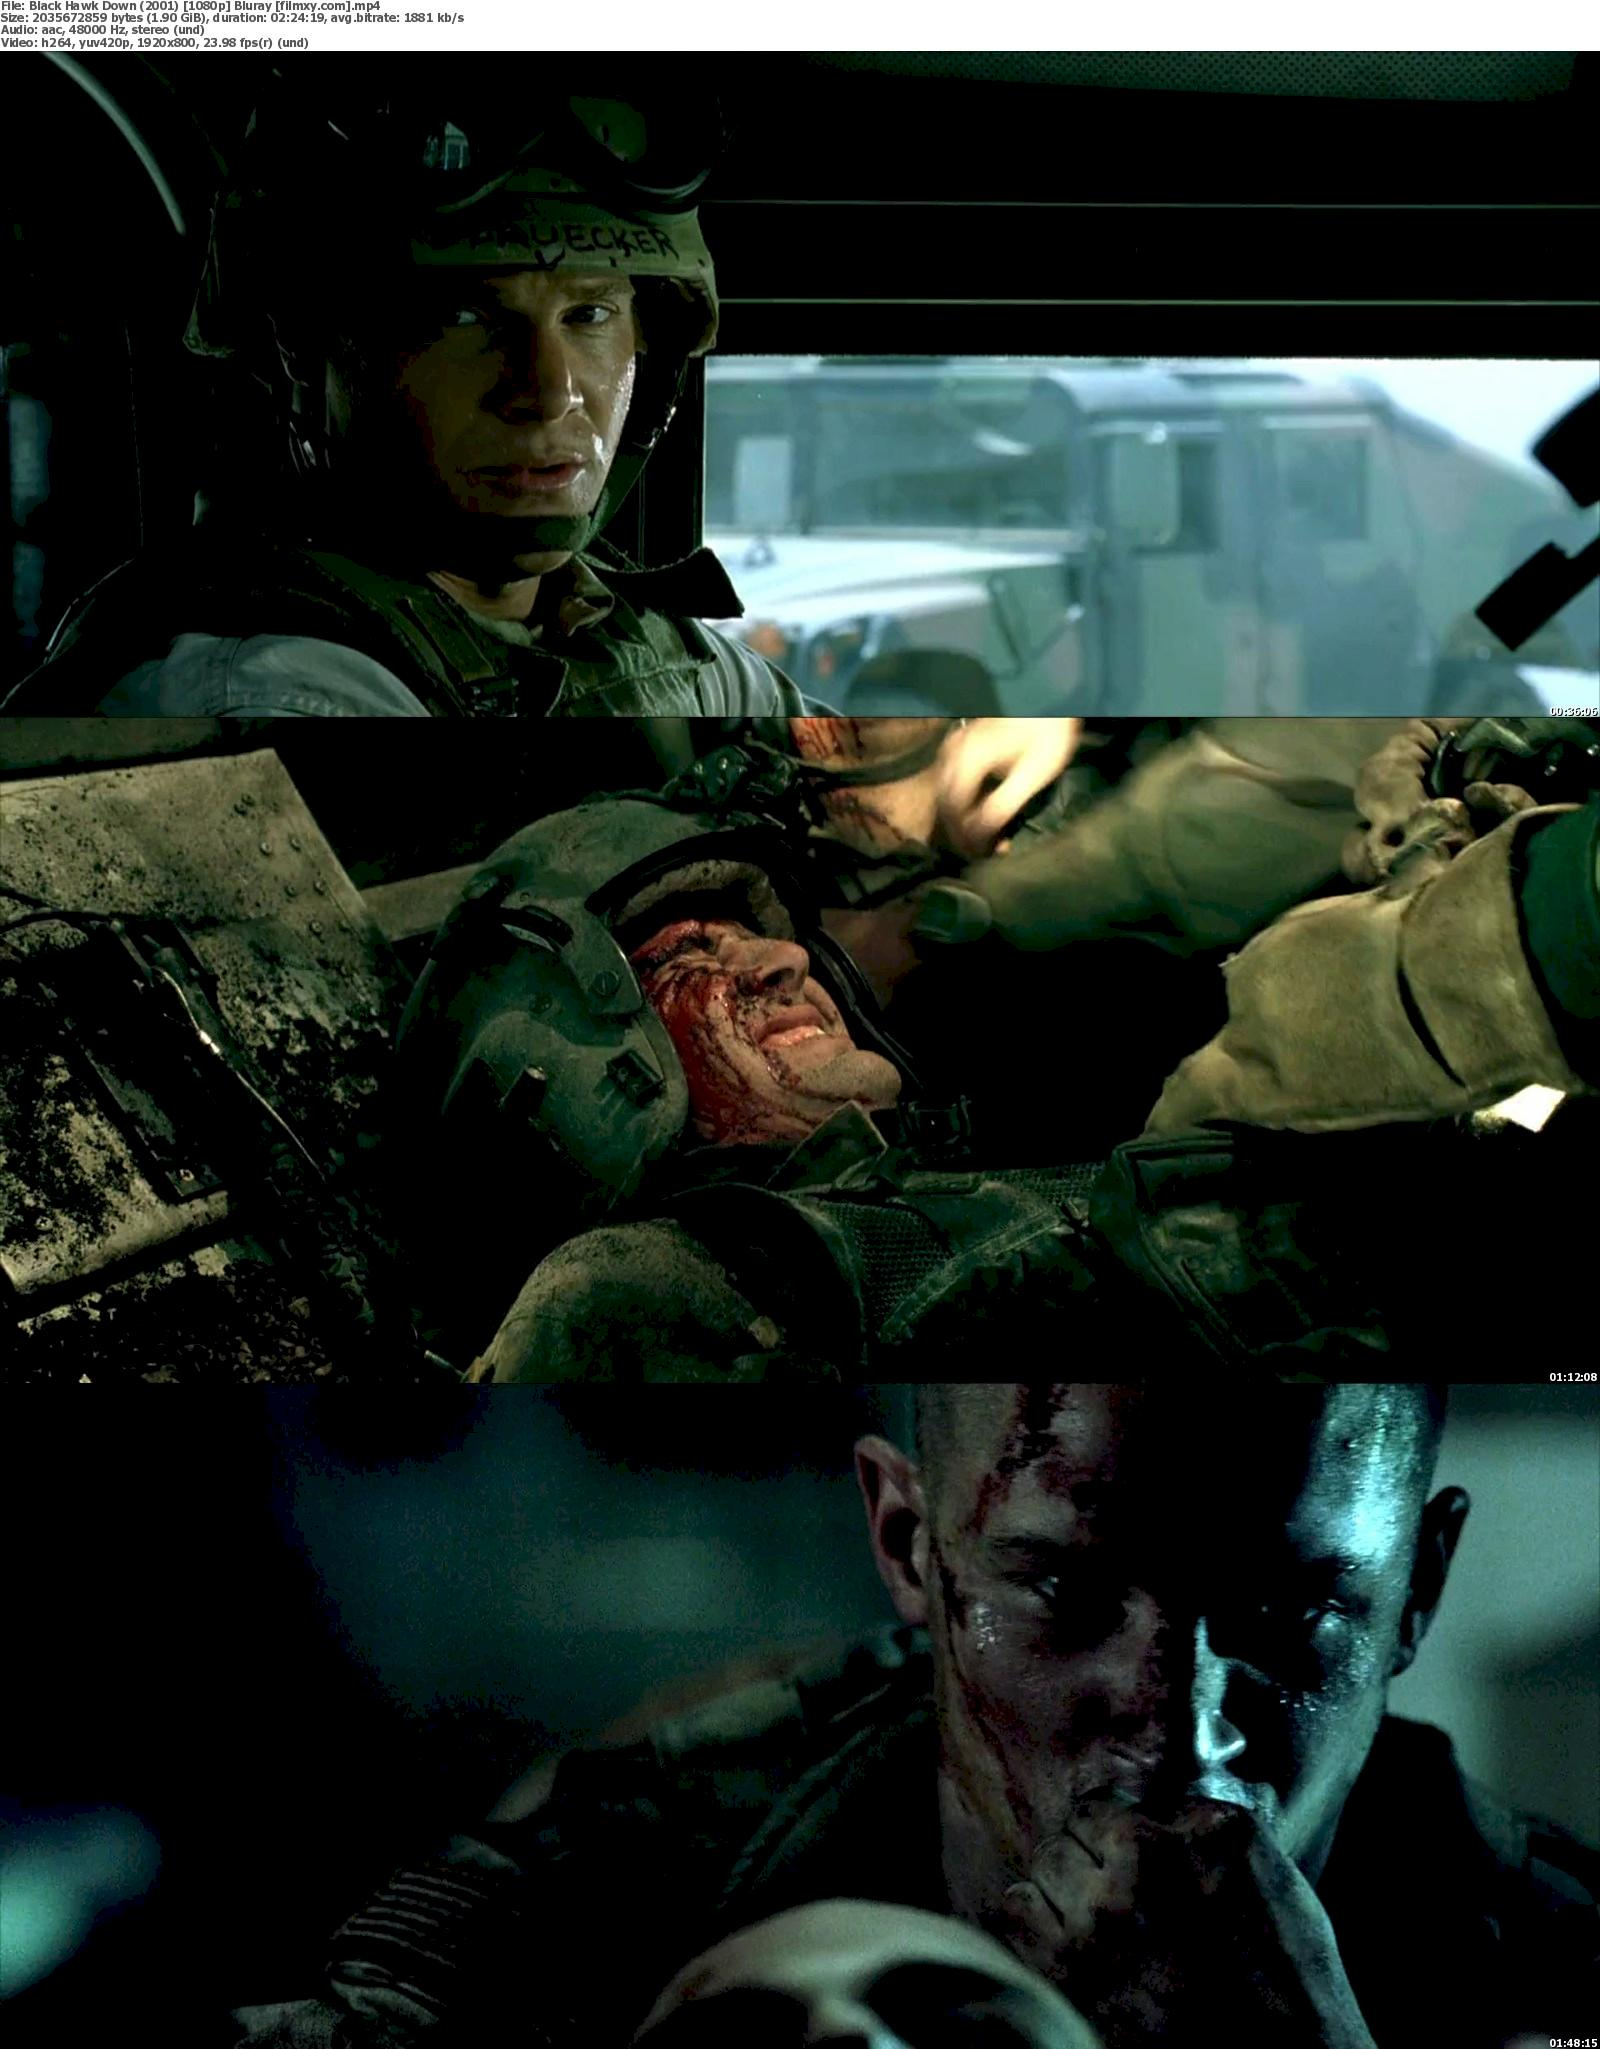 Black Hawk Down (2001) 720p & 1080p Bluray Free Download 1080p Screenshot